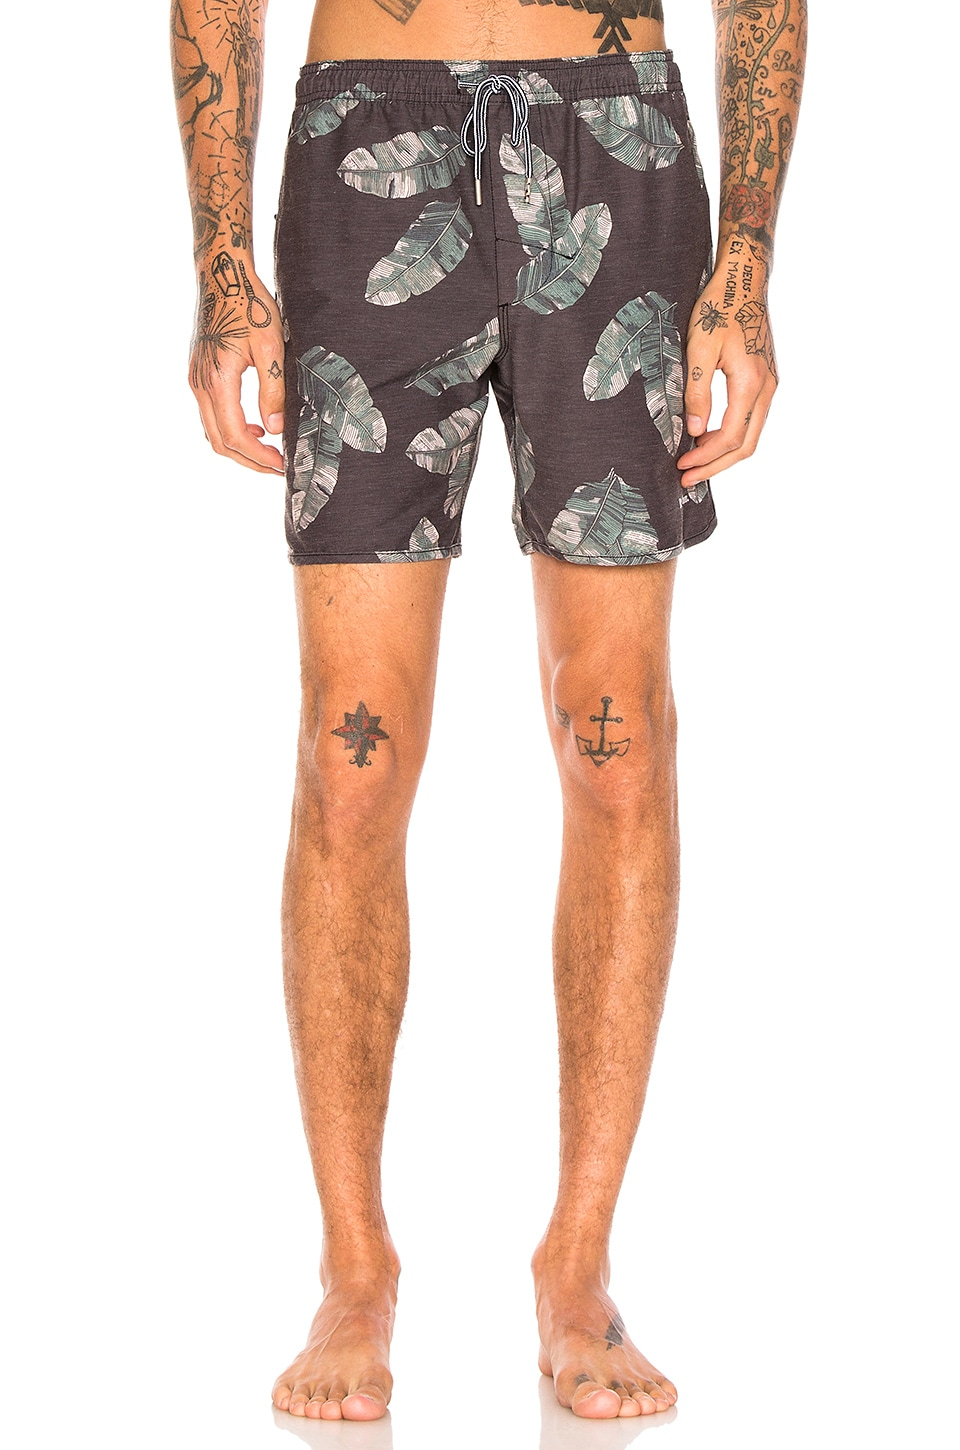 Tropics Beach Short by Rhythm